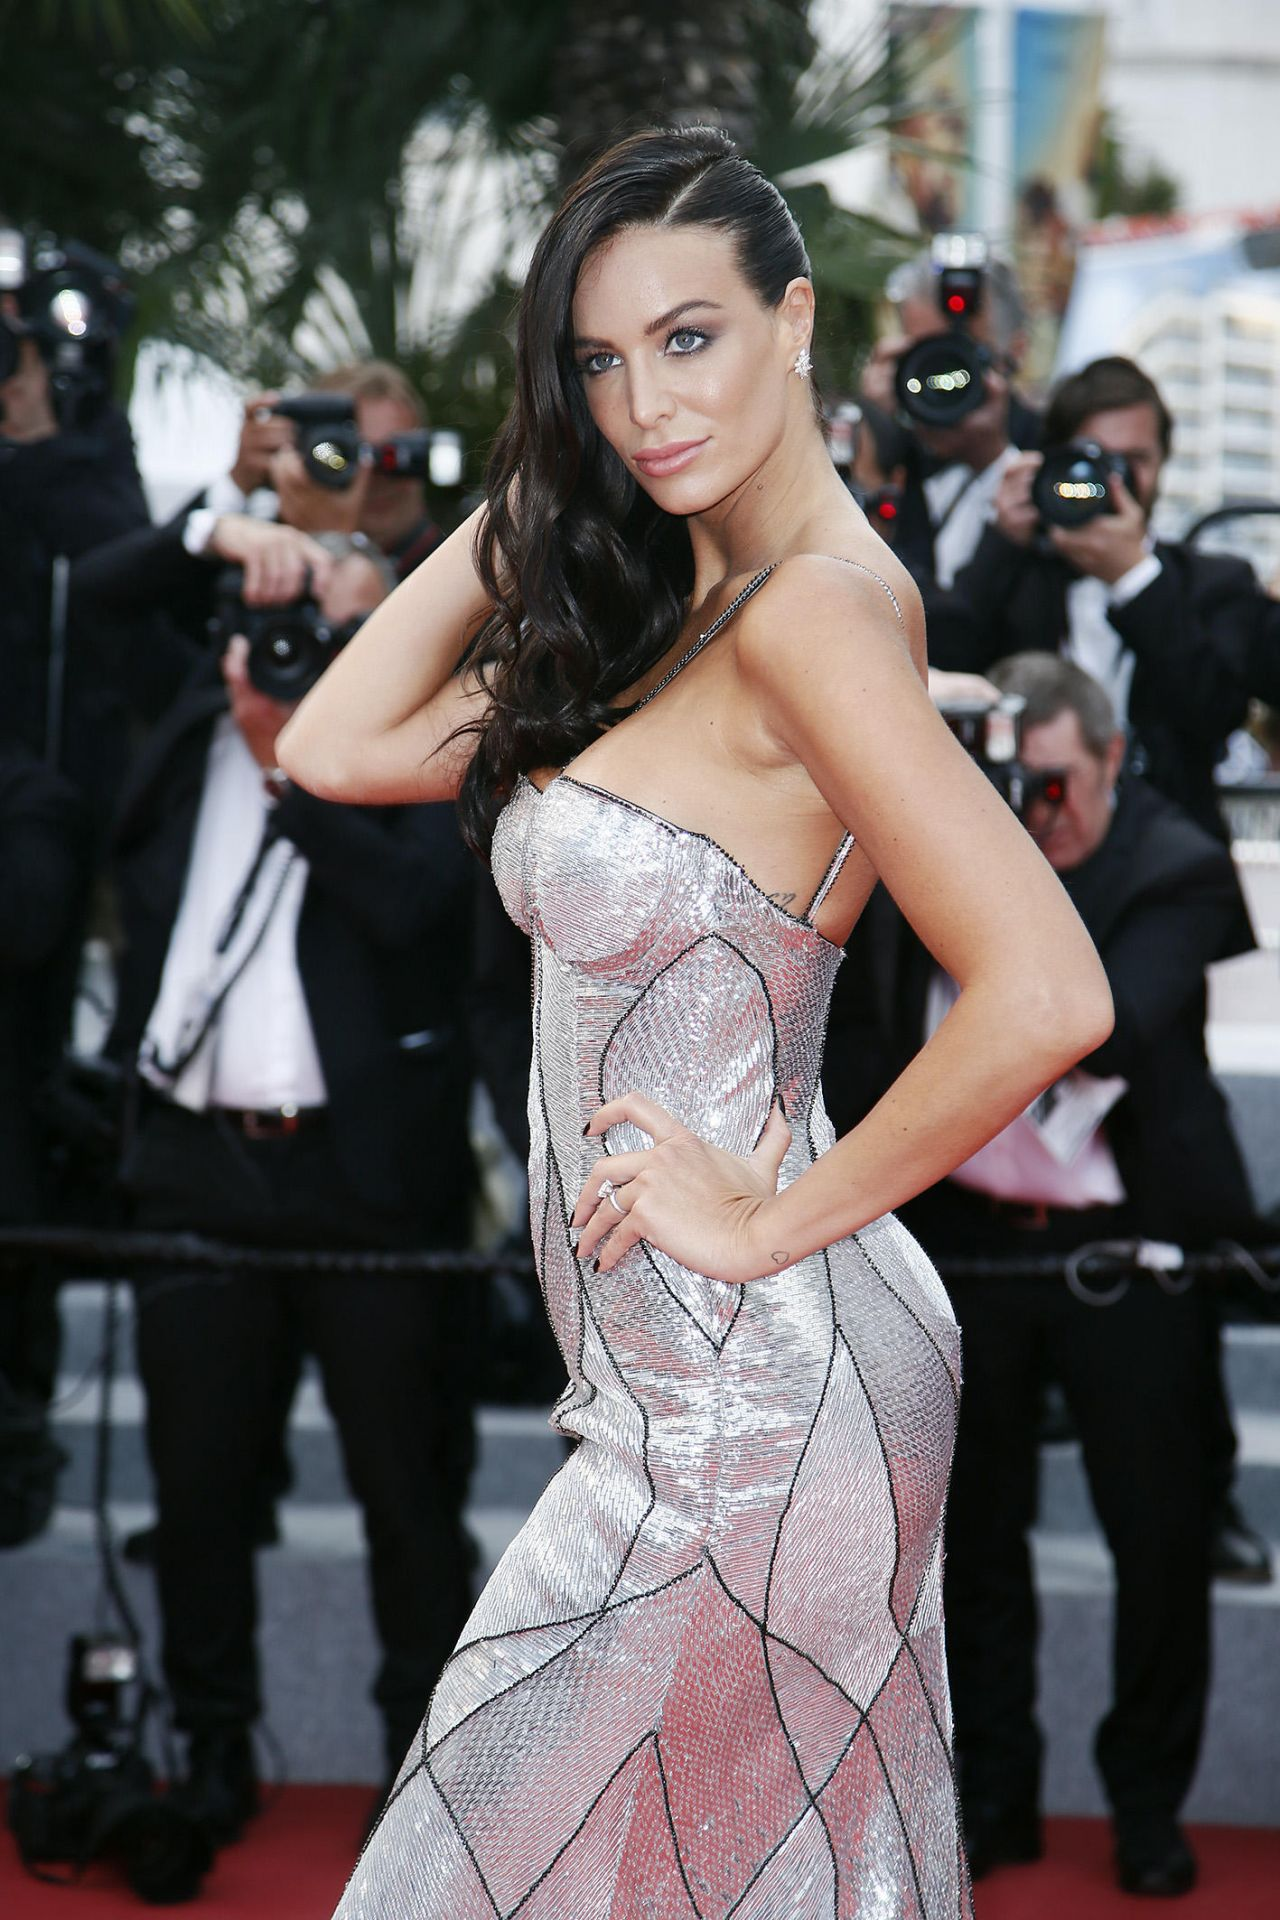 Jade Foret - The Wild Pear Tree Red Carpet in Cannes